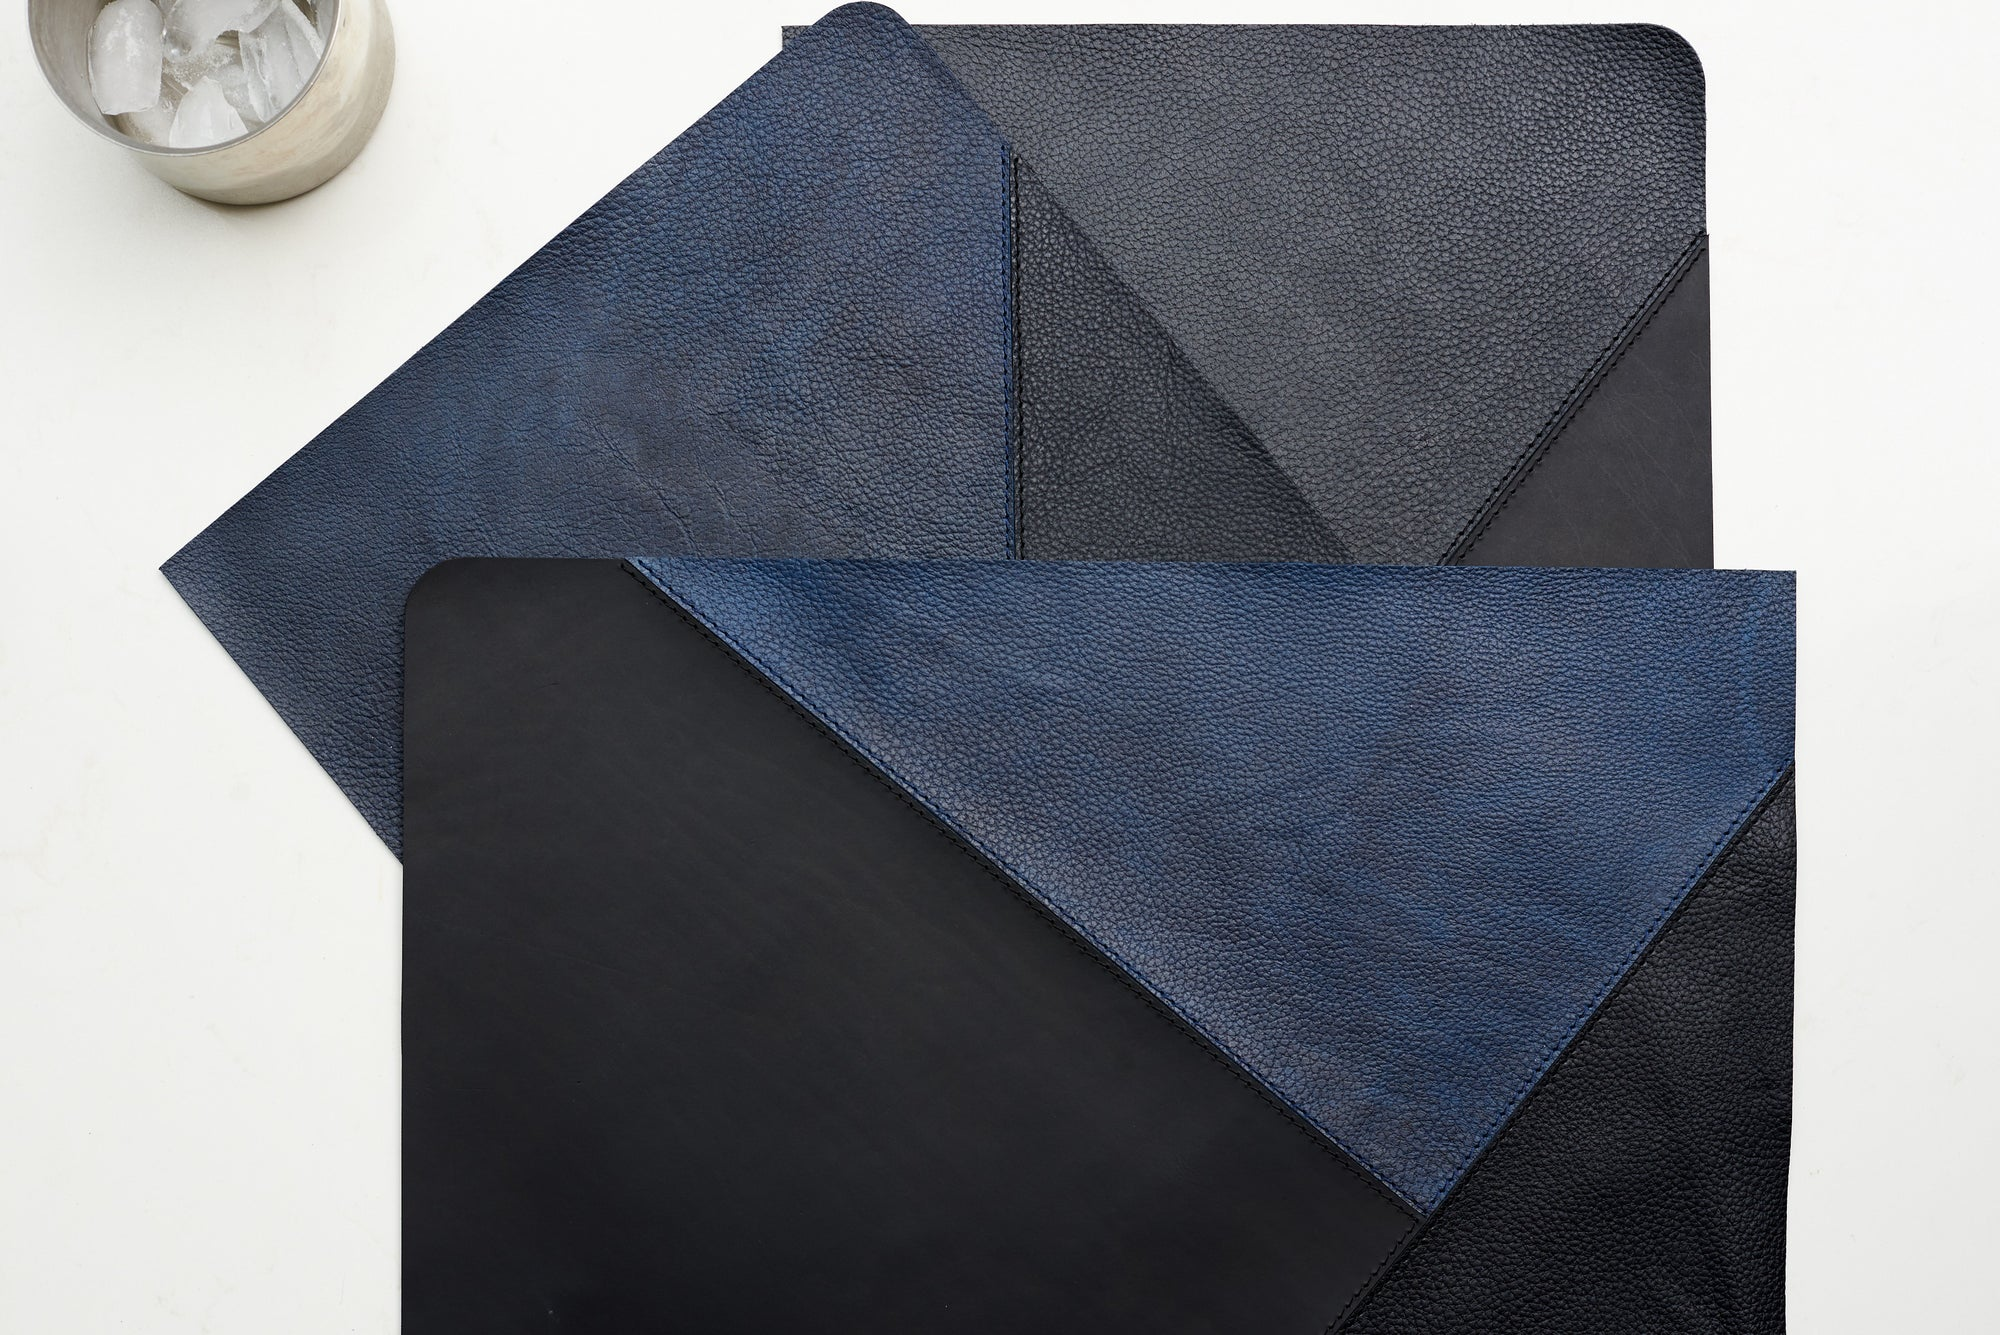 Movement. Leather Placemat Set Midnight by Modoun Home Decor